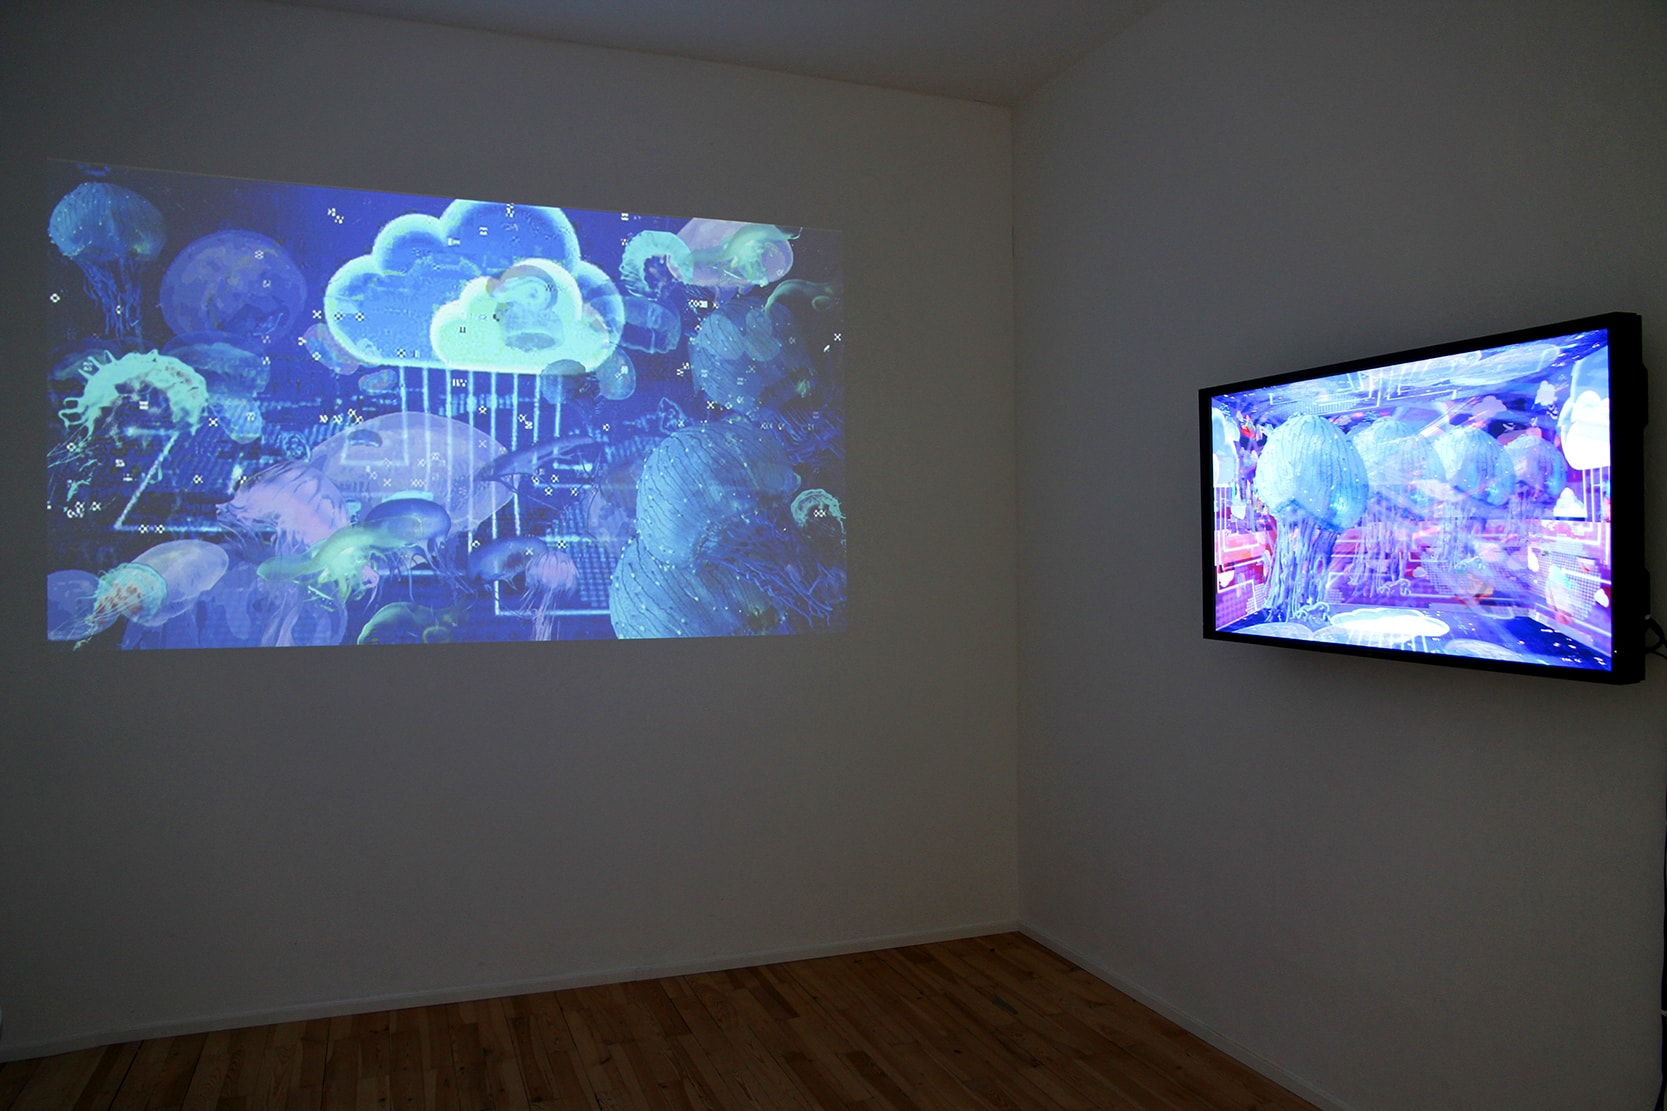 Einen Riesigen Schwarm installation - back room showing video animations from the series Colonise the Cloud